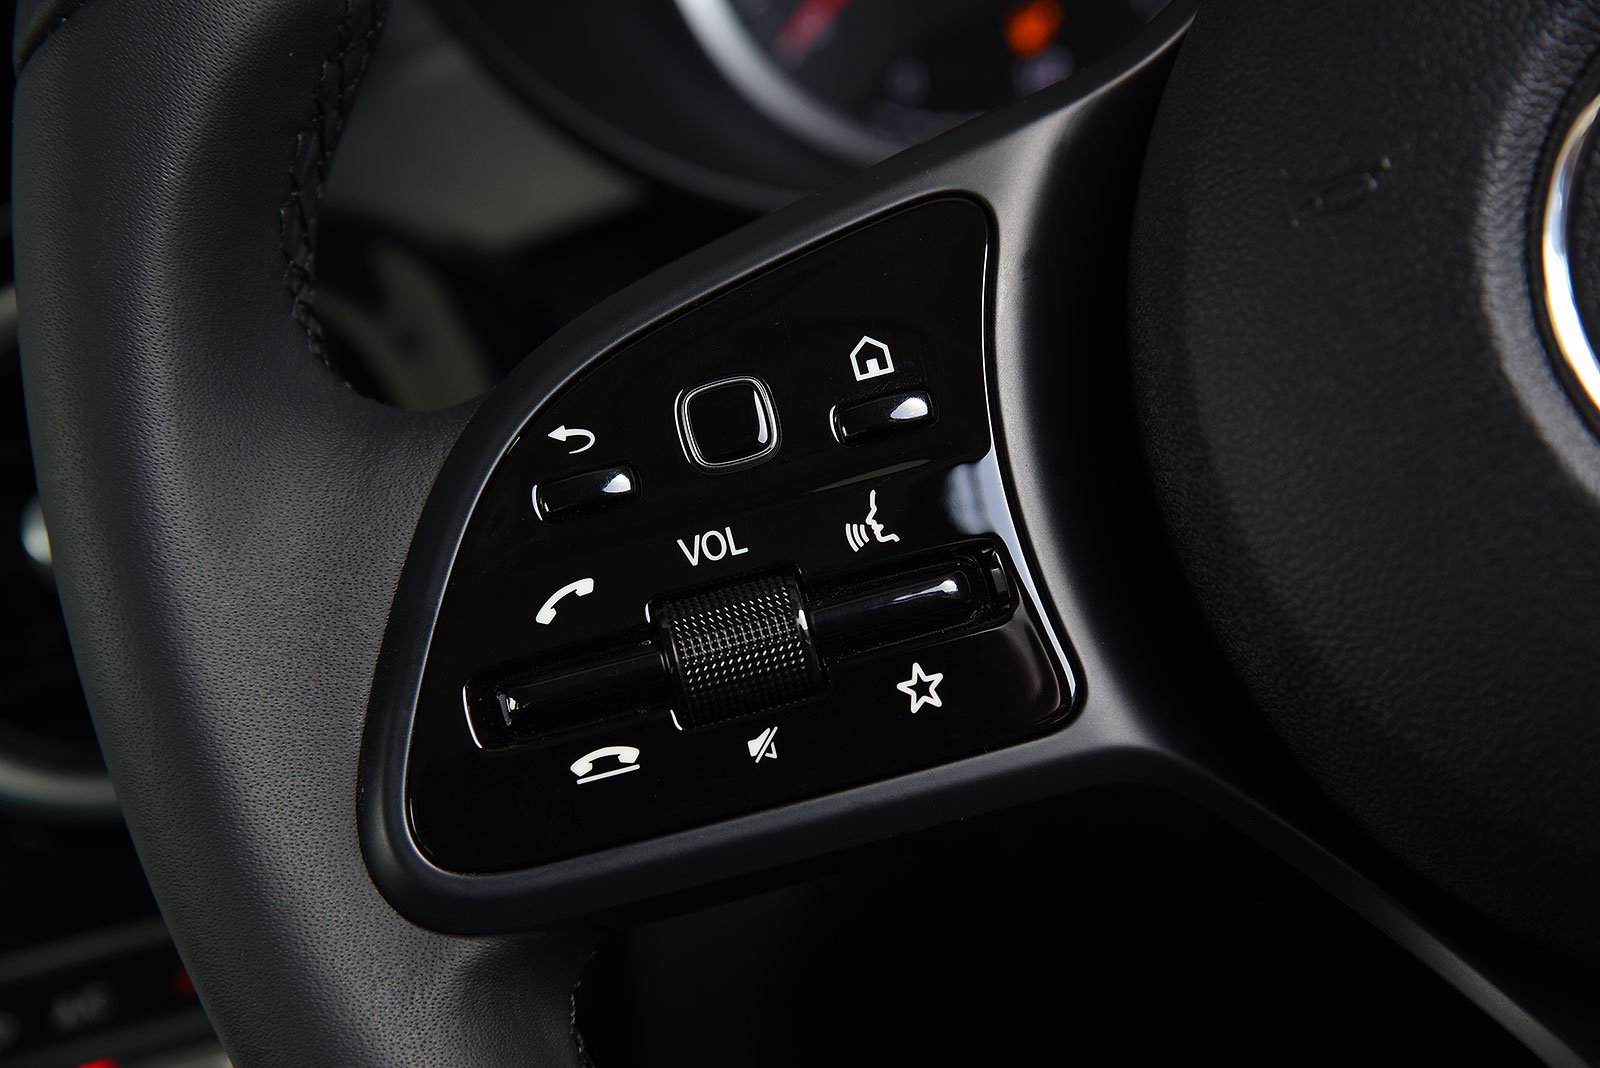 Not using the steering-wheel mounted shortcut buttons